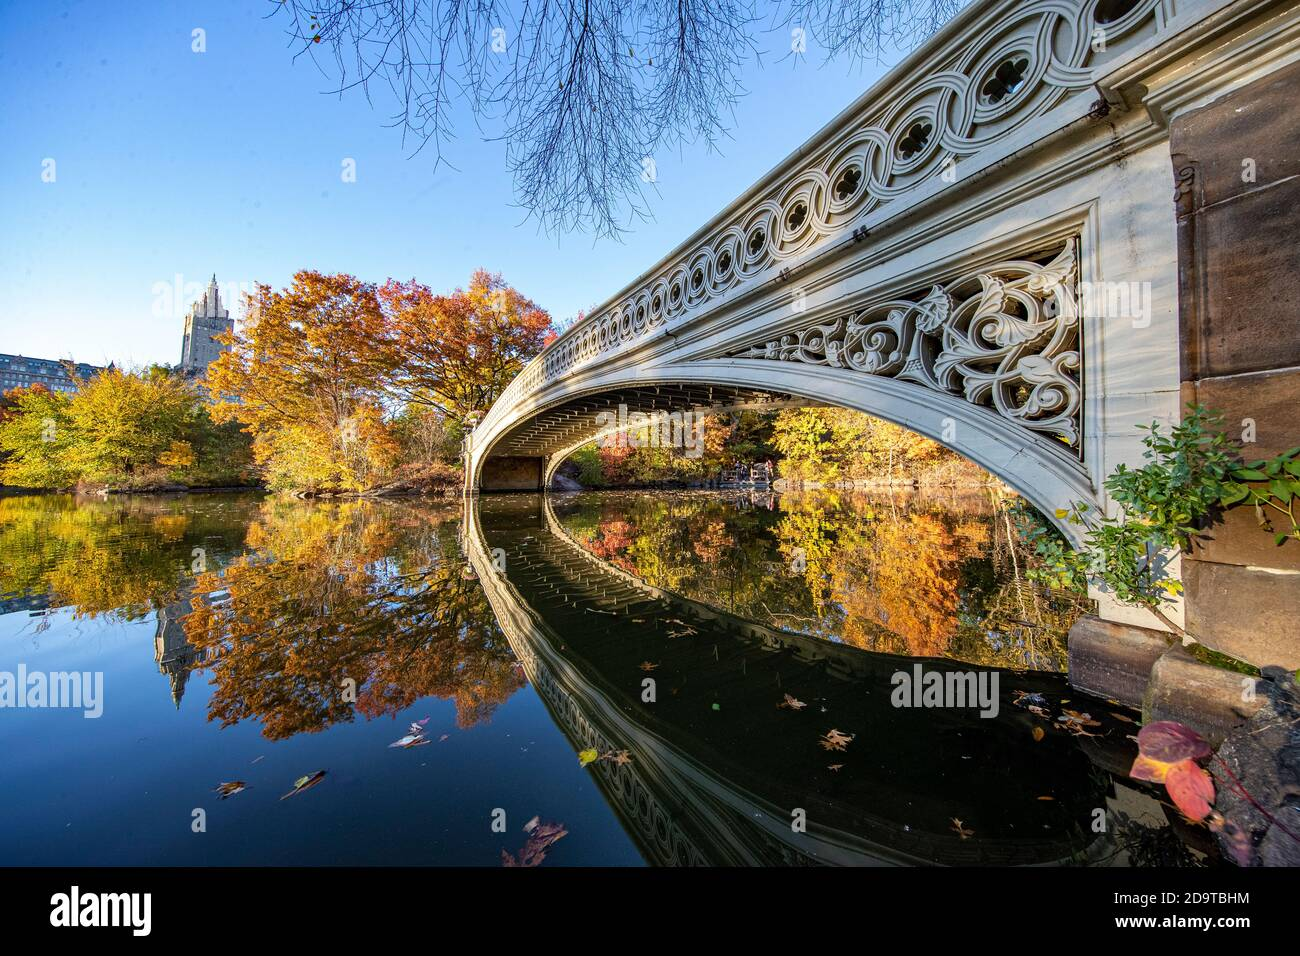 Trees reflect off the Pool in Central Park, New York City Stock Photo